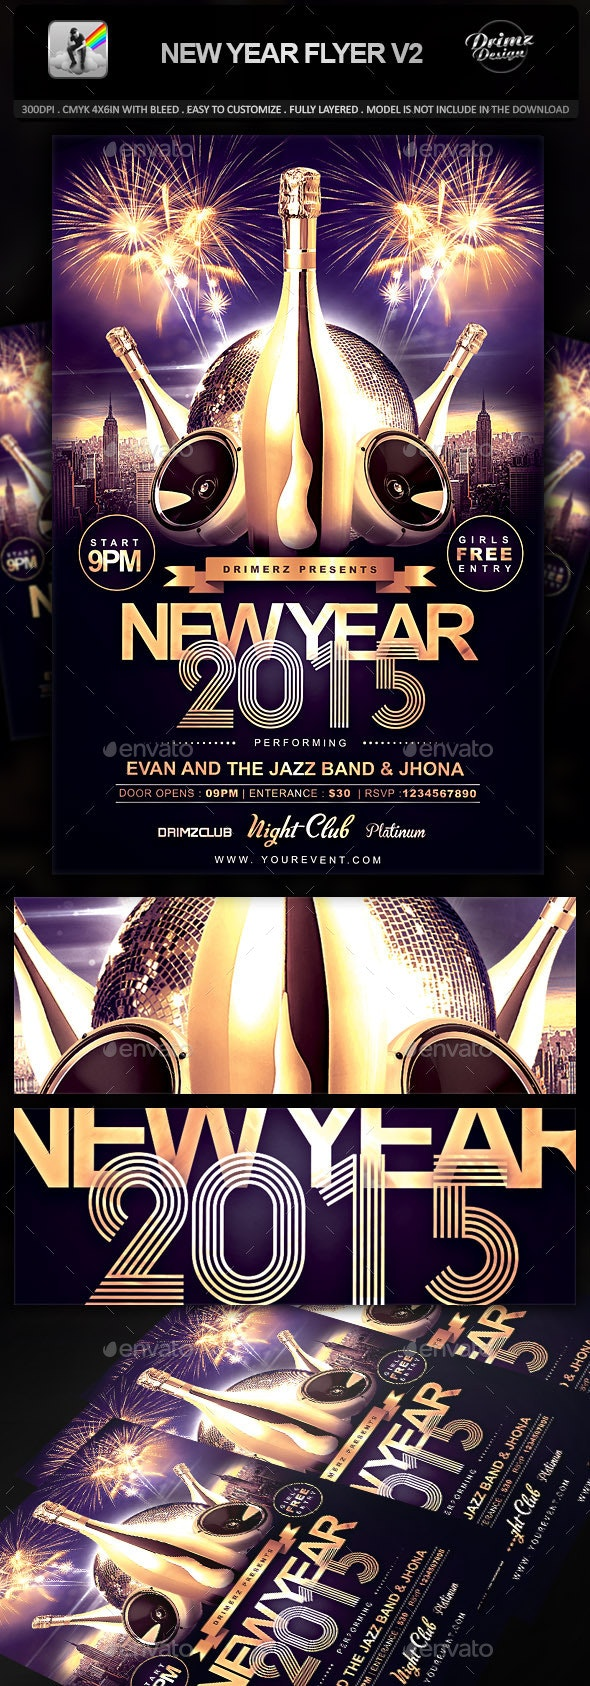 New Year Flyer V2 - Holidays Events